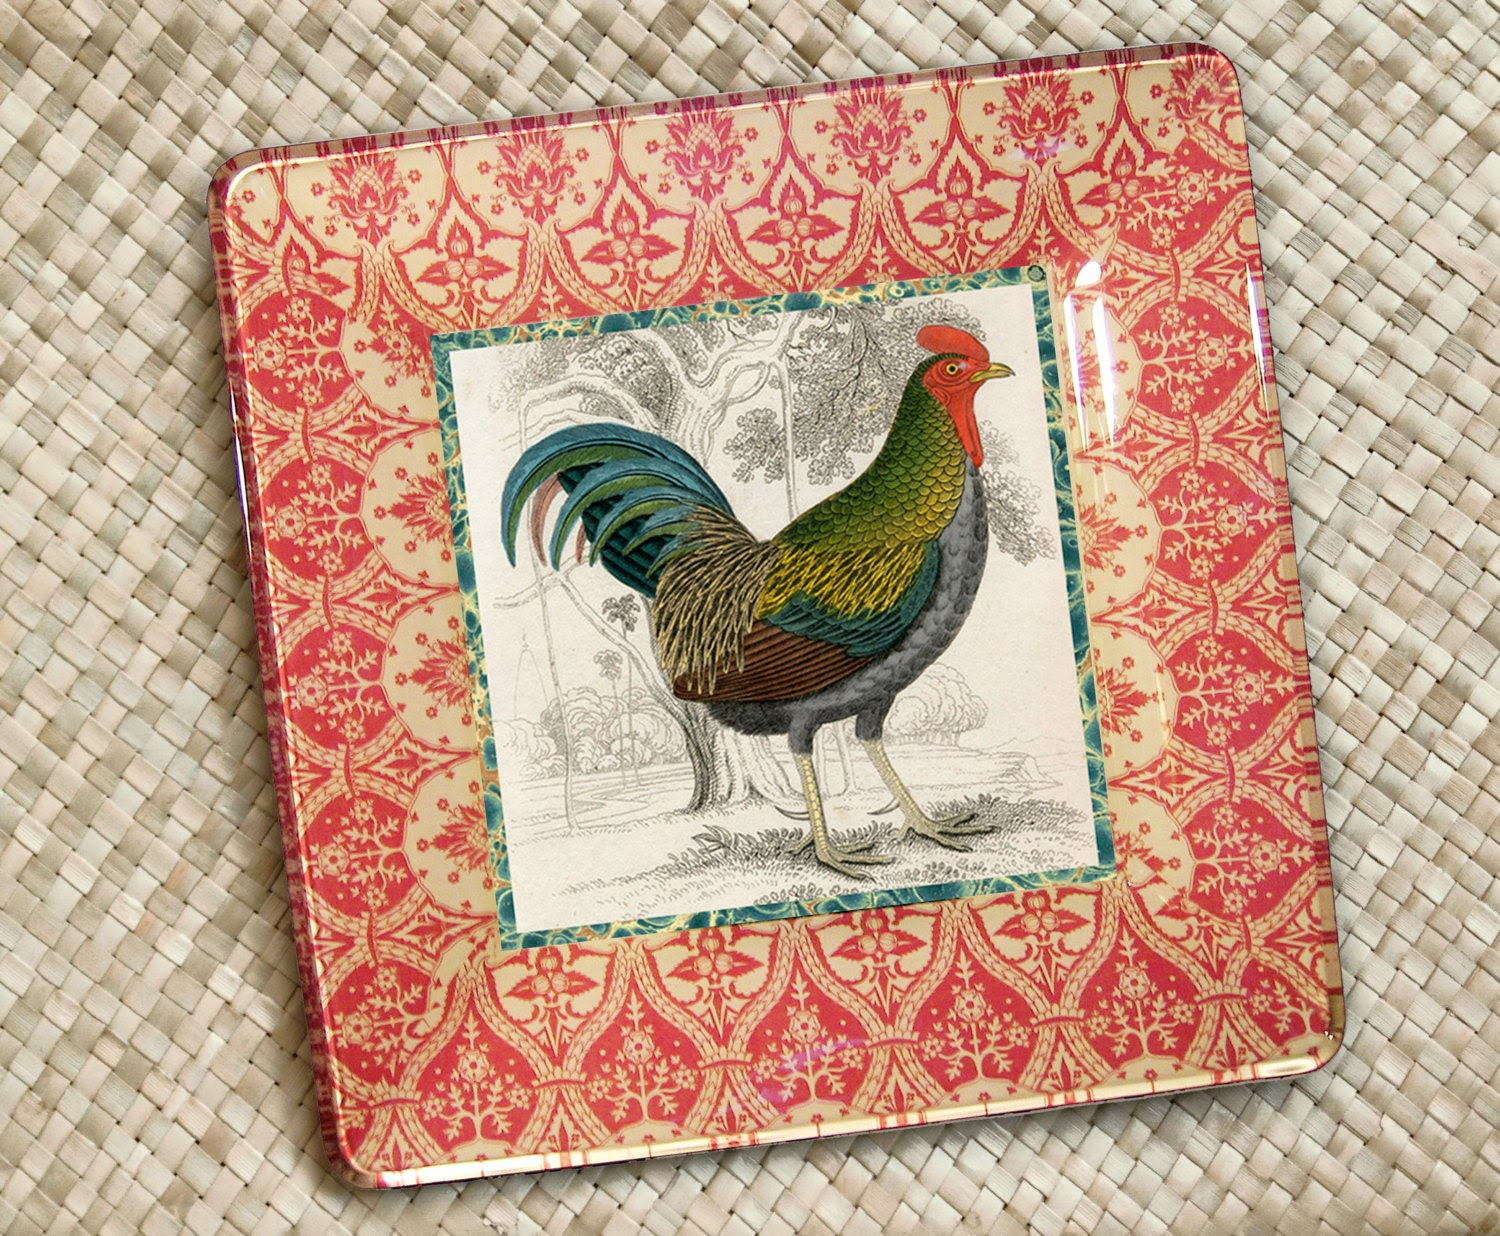 Popular items for rooster decor on Etsy